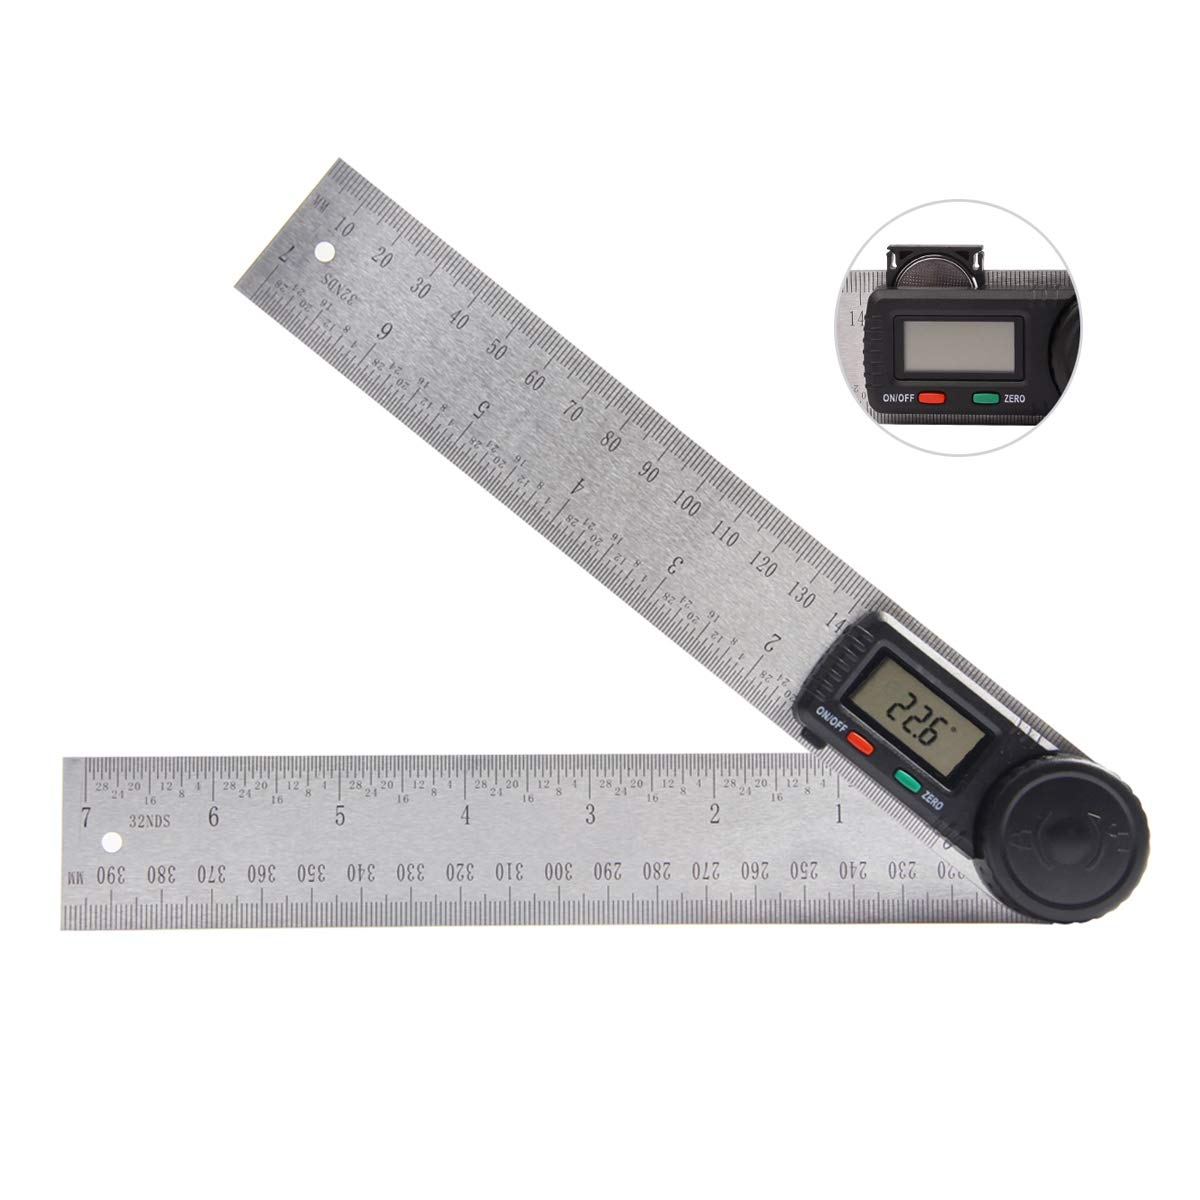 Digital Angle Finder Protractor, PROSTORMER 7 inch Stainless Steel Angle Ruler Degree Finder with Locking and Zeroing Function for Woodworking, Construction and Drawing